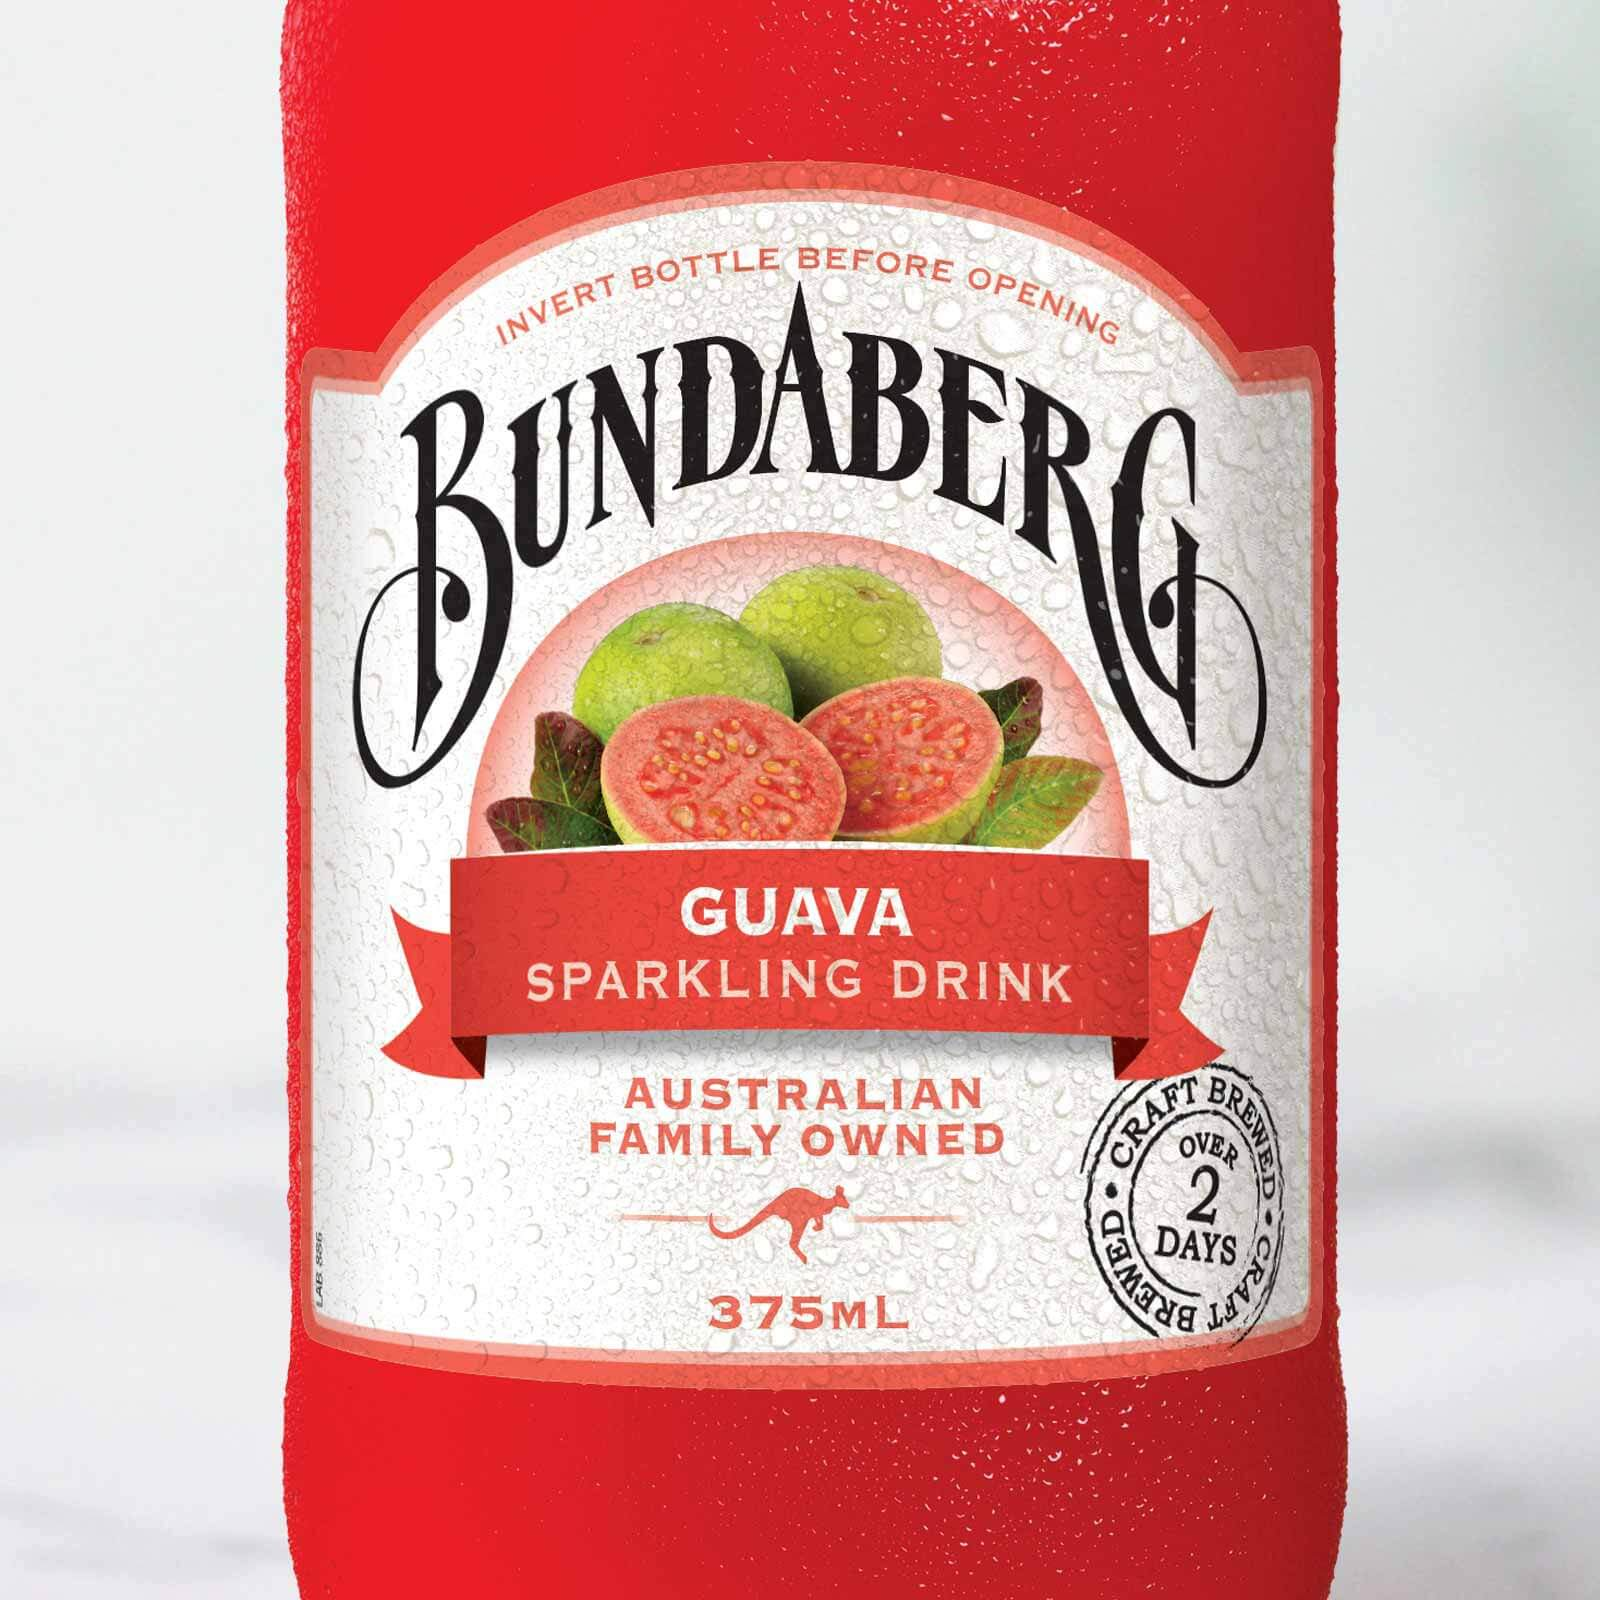 products-bundaberg-guava-b